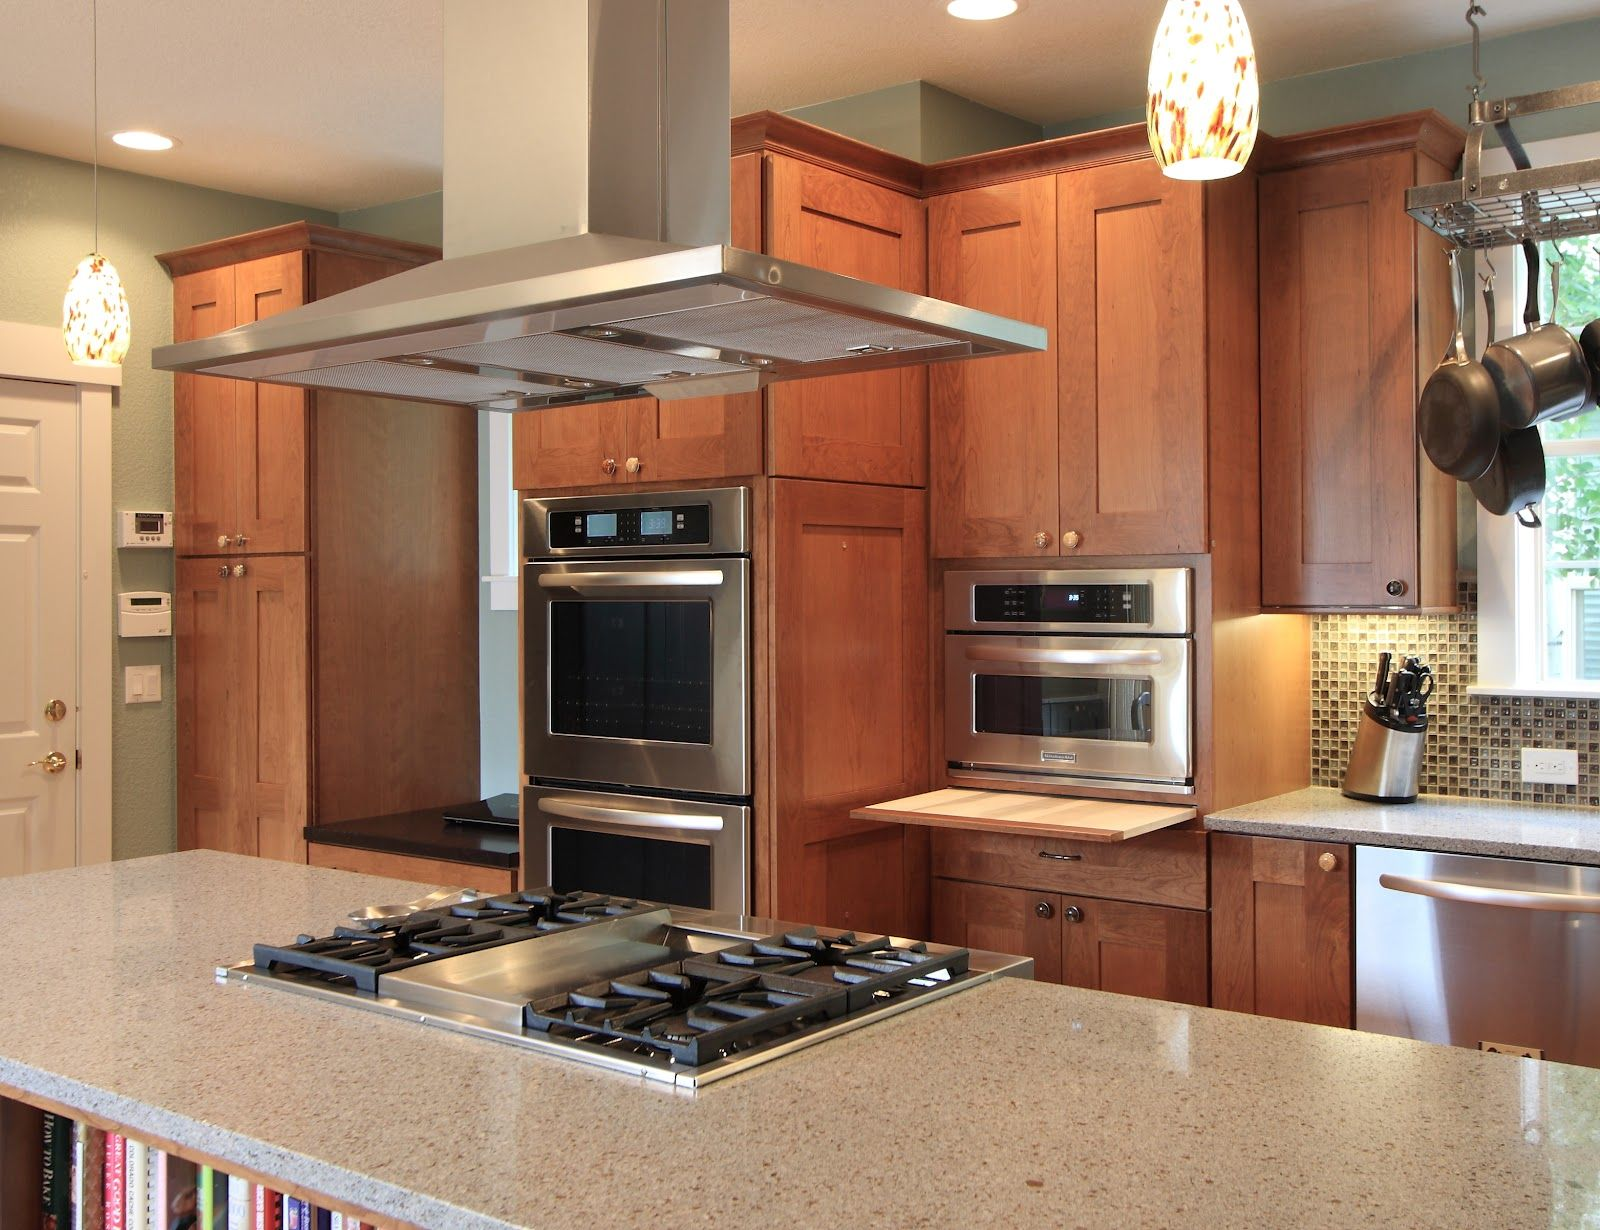 Island Cooktop Island Cooktop And Oven Cabinets Beyond My Favorite Cabinet Is The